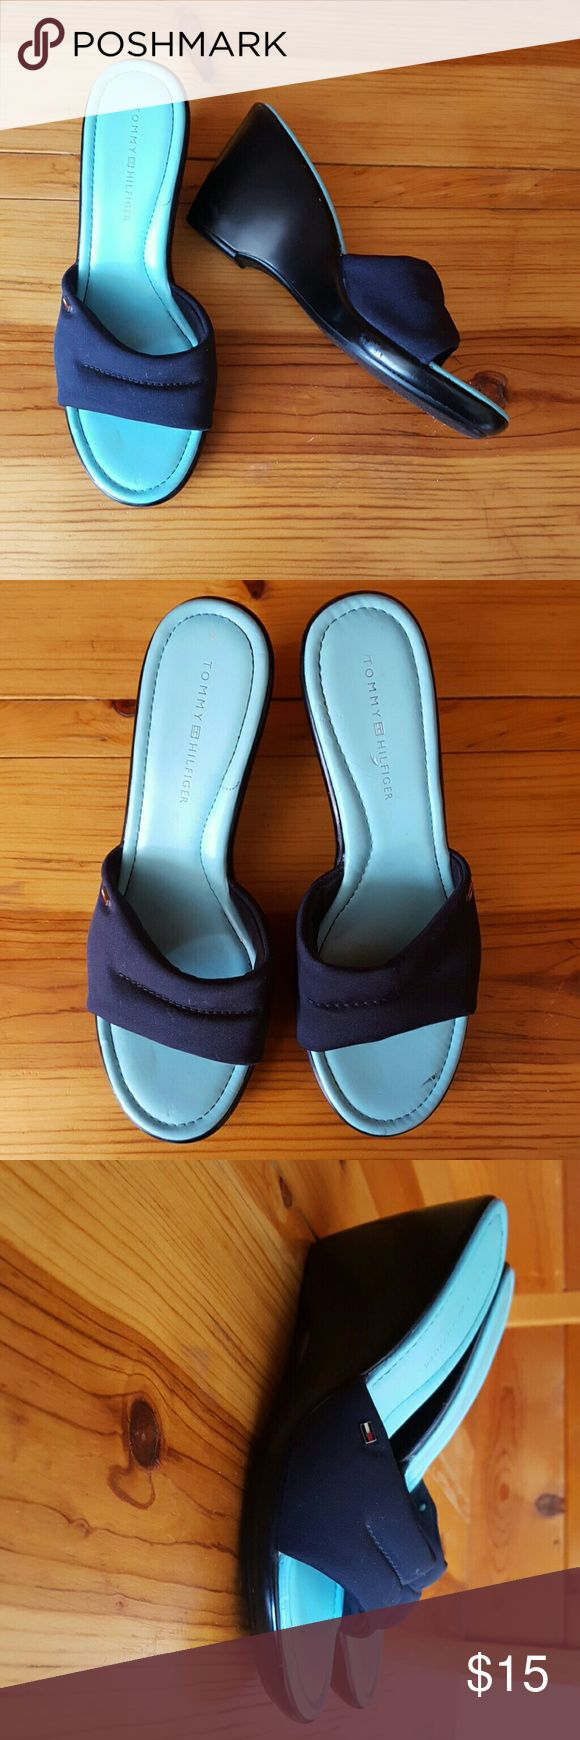 """Tommy Hilfiger Wedged Sandles with 3 1/2"""" heels Tommy Hilfiger blue Canvas wedges Sandler's with 3 1/2"""" heel. Good condition. Tommy Hilfiger Shoes"""